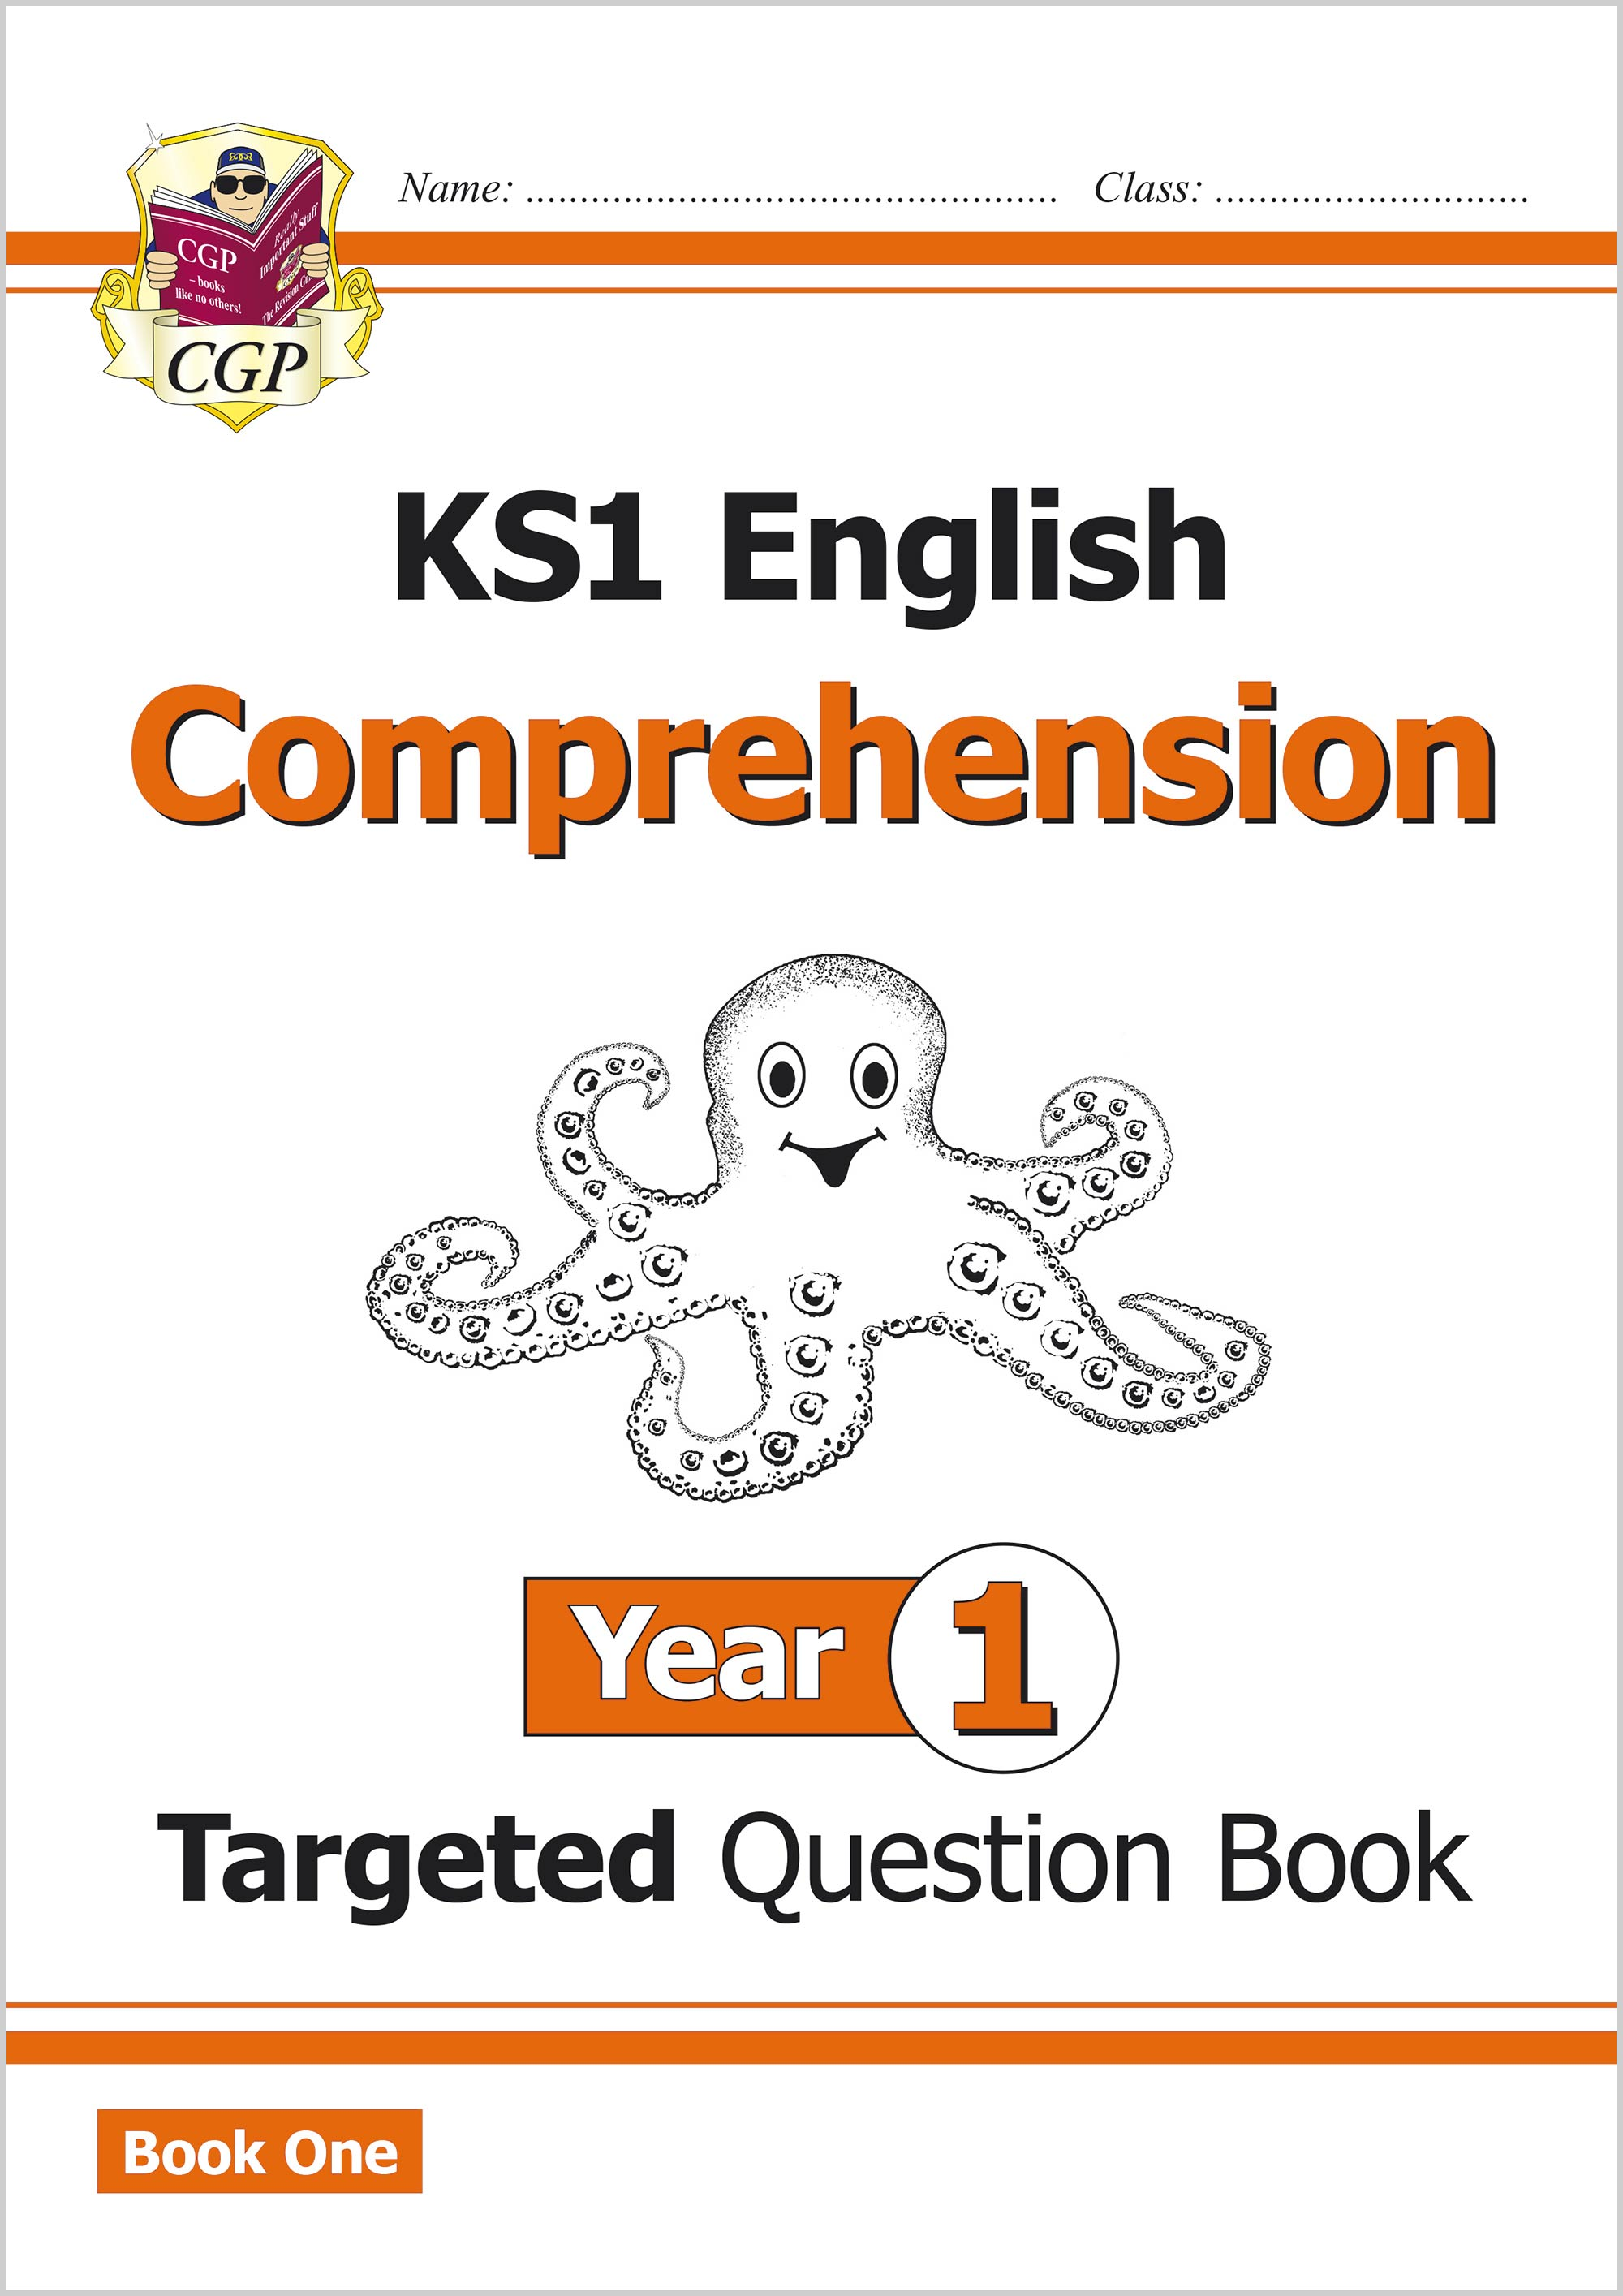 E1CW11 - New KS1 English Targeted Question Book: Comprehension - Year 1